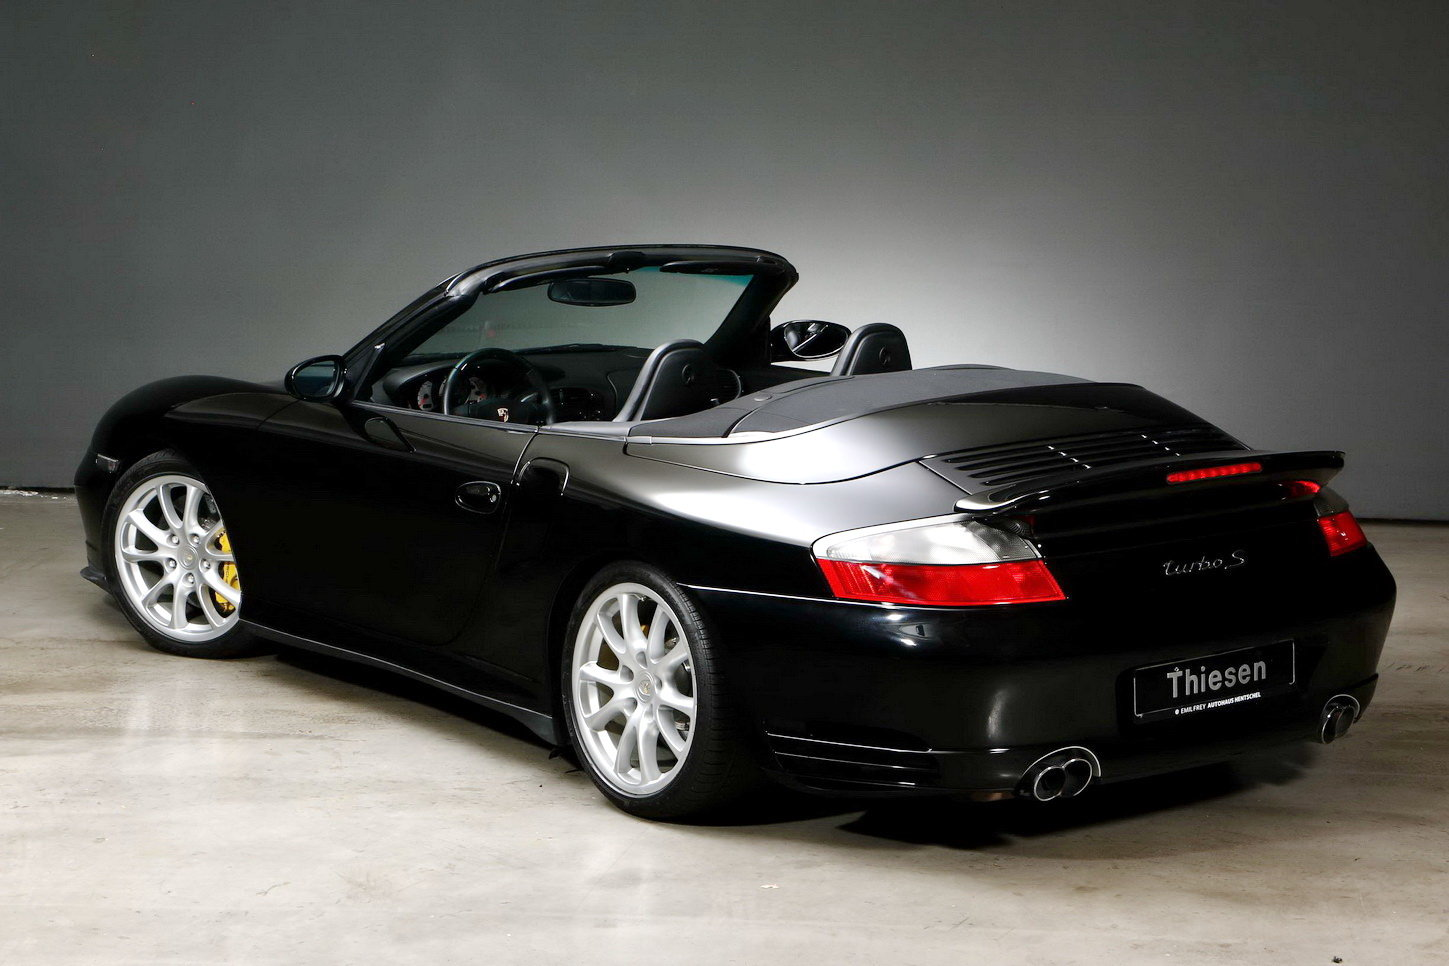 2005 Porsche 996 Turbo S Cabriolet For Sale (picture 4 of 6)